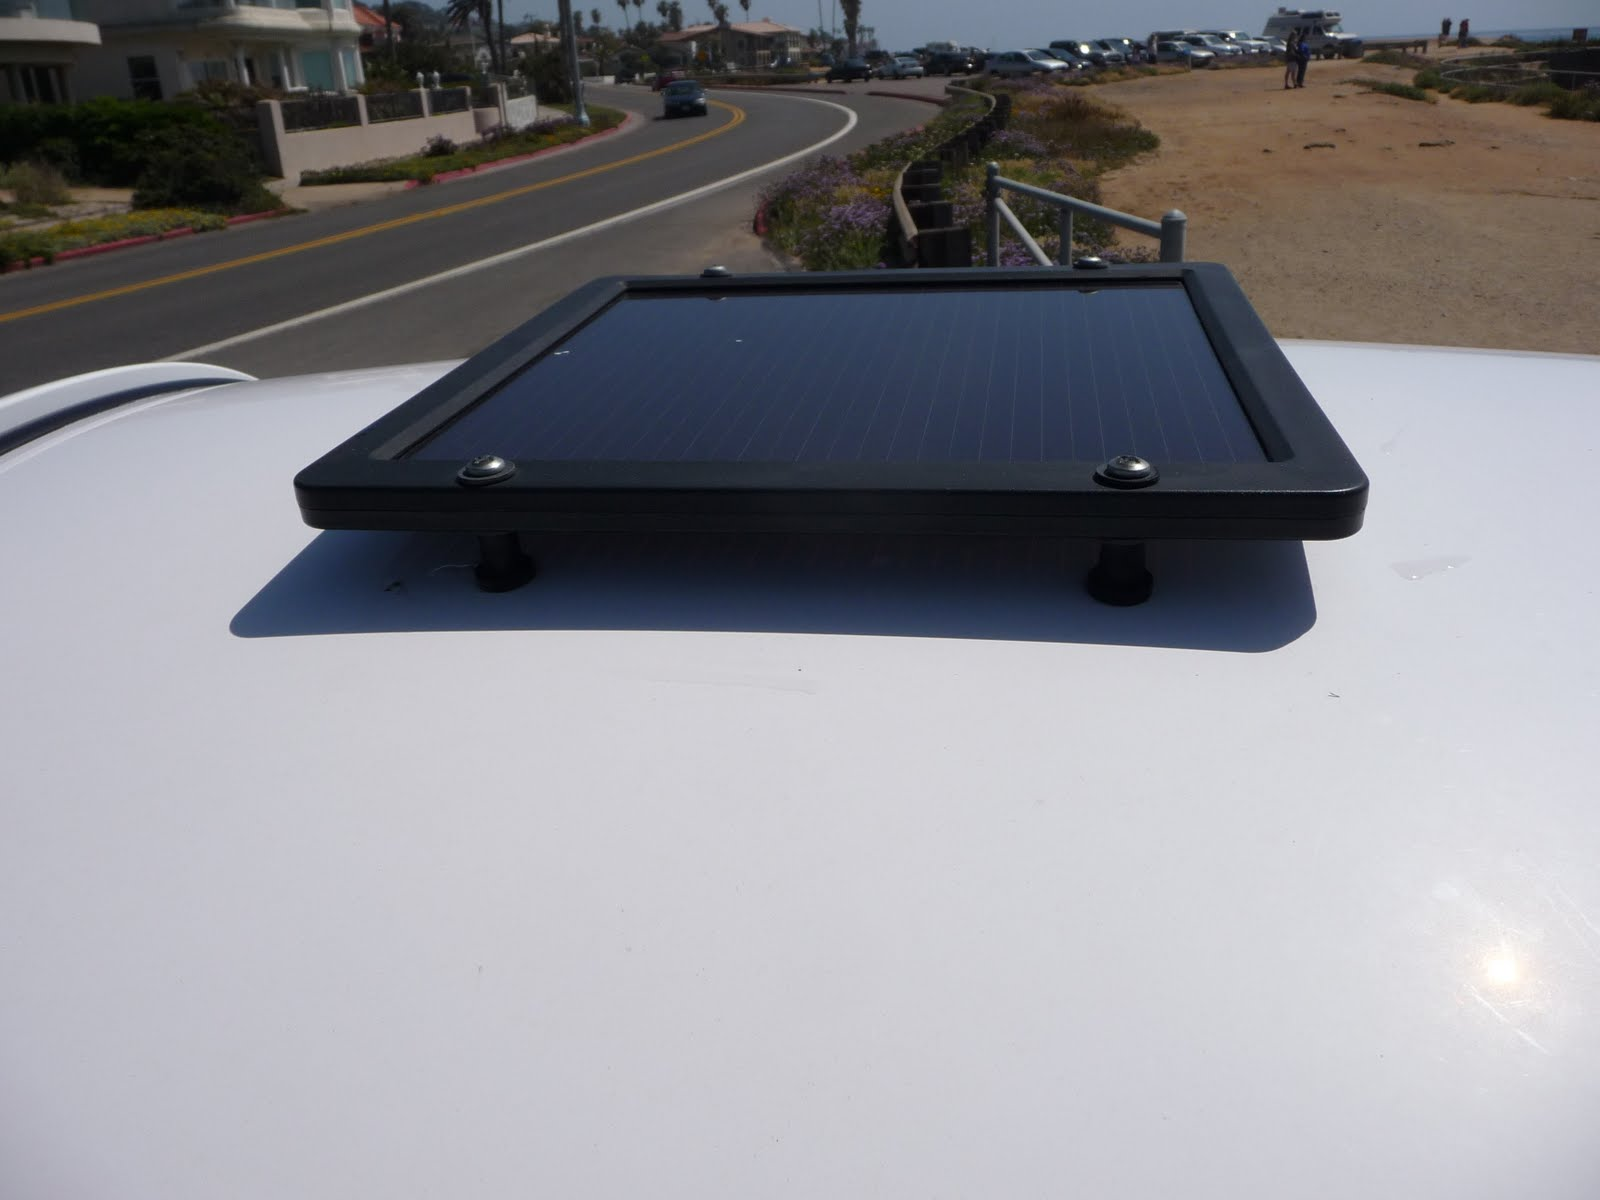 small resolution of i added a solar panel to charge the stereo battery when the gem car wasn t being used and of course parked in the sun no point to this if you re parking